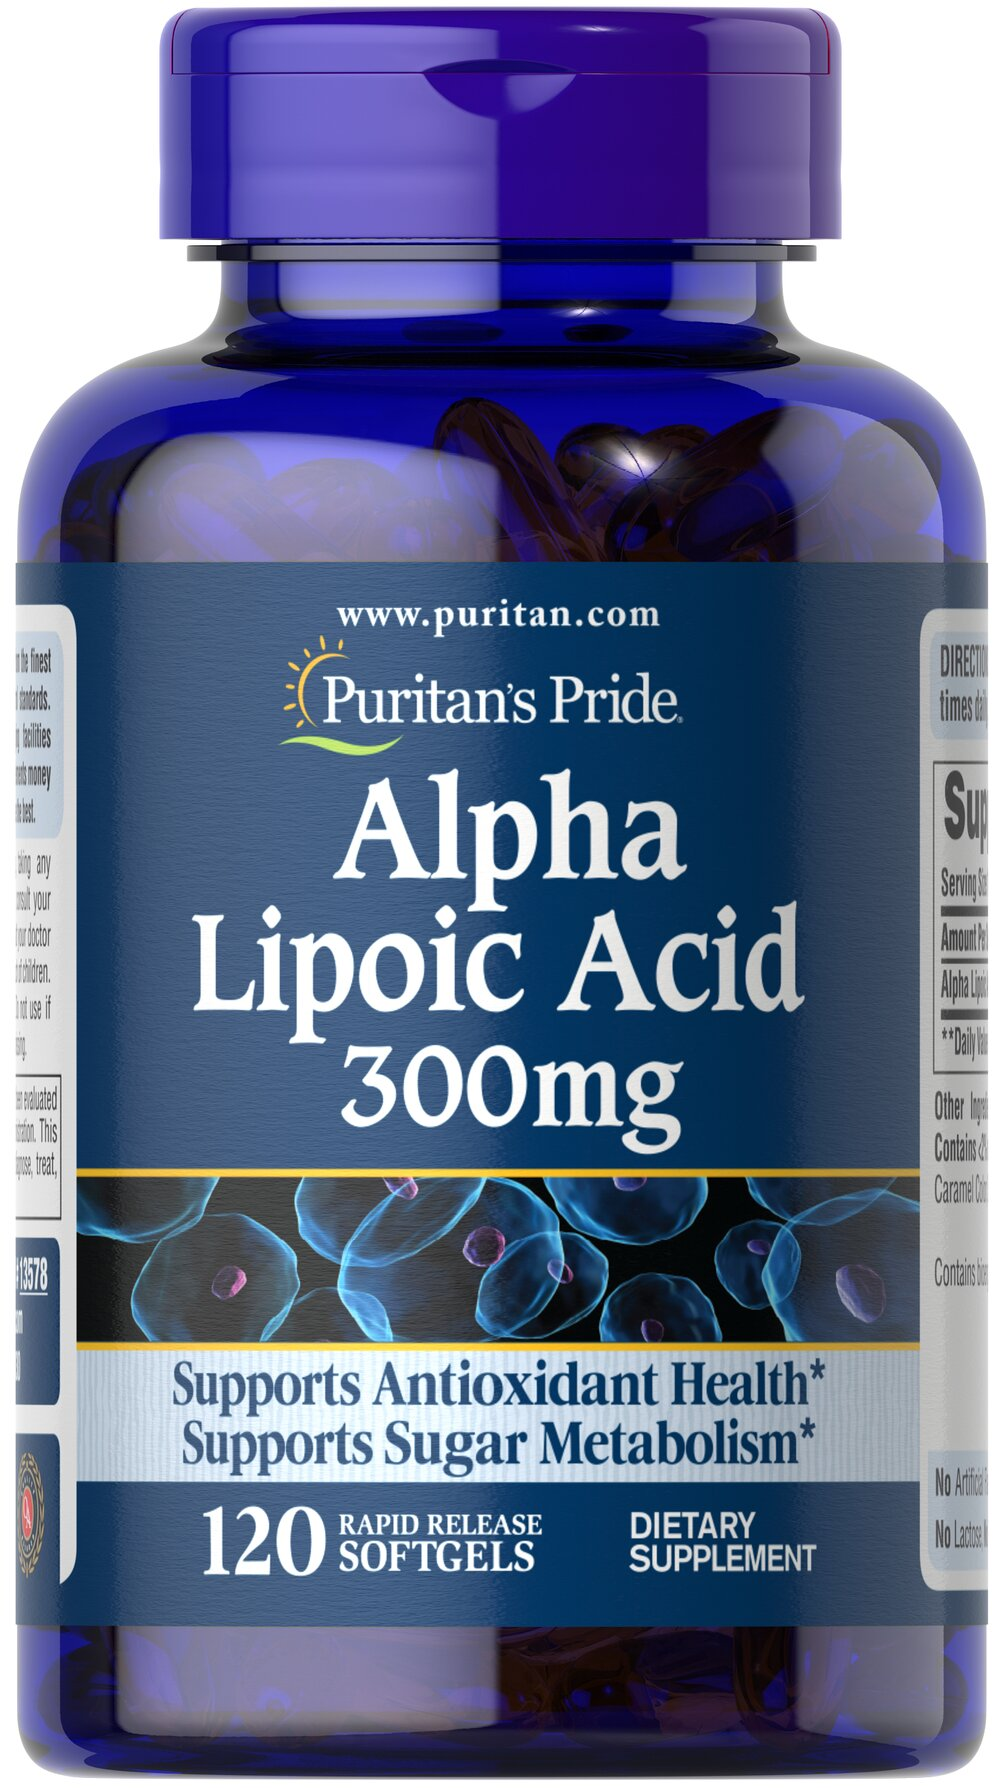 "Alpha Lipoic Acid 300 mg <p>Alpha Lipoic Acid (ALA) helps metabolize sugar, especially in muscles, where it promotes energy.**</p><p>ALA is also beneficial for liver health, and helps to revitalize the underlying structure of the skin so it can look healthier and more radiant.**</p><p> ALA is often called the ""universal antioxidant"" for its ability to help neutralize cell-damaging free radicals.** </p> 120 Softgels 300 mg $8.09"